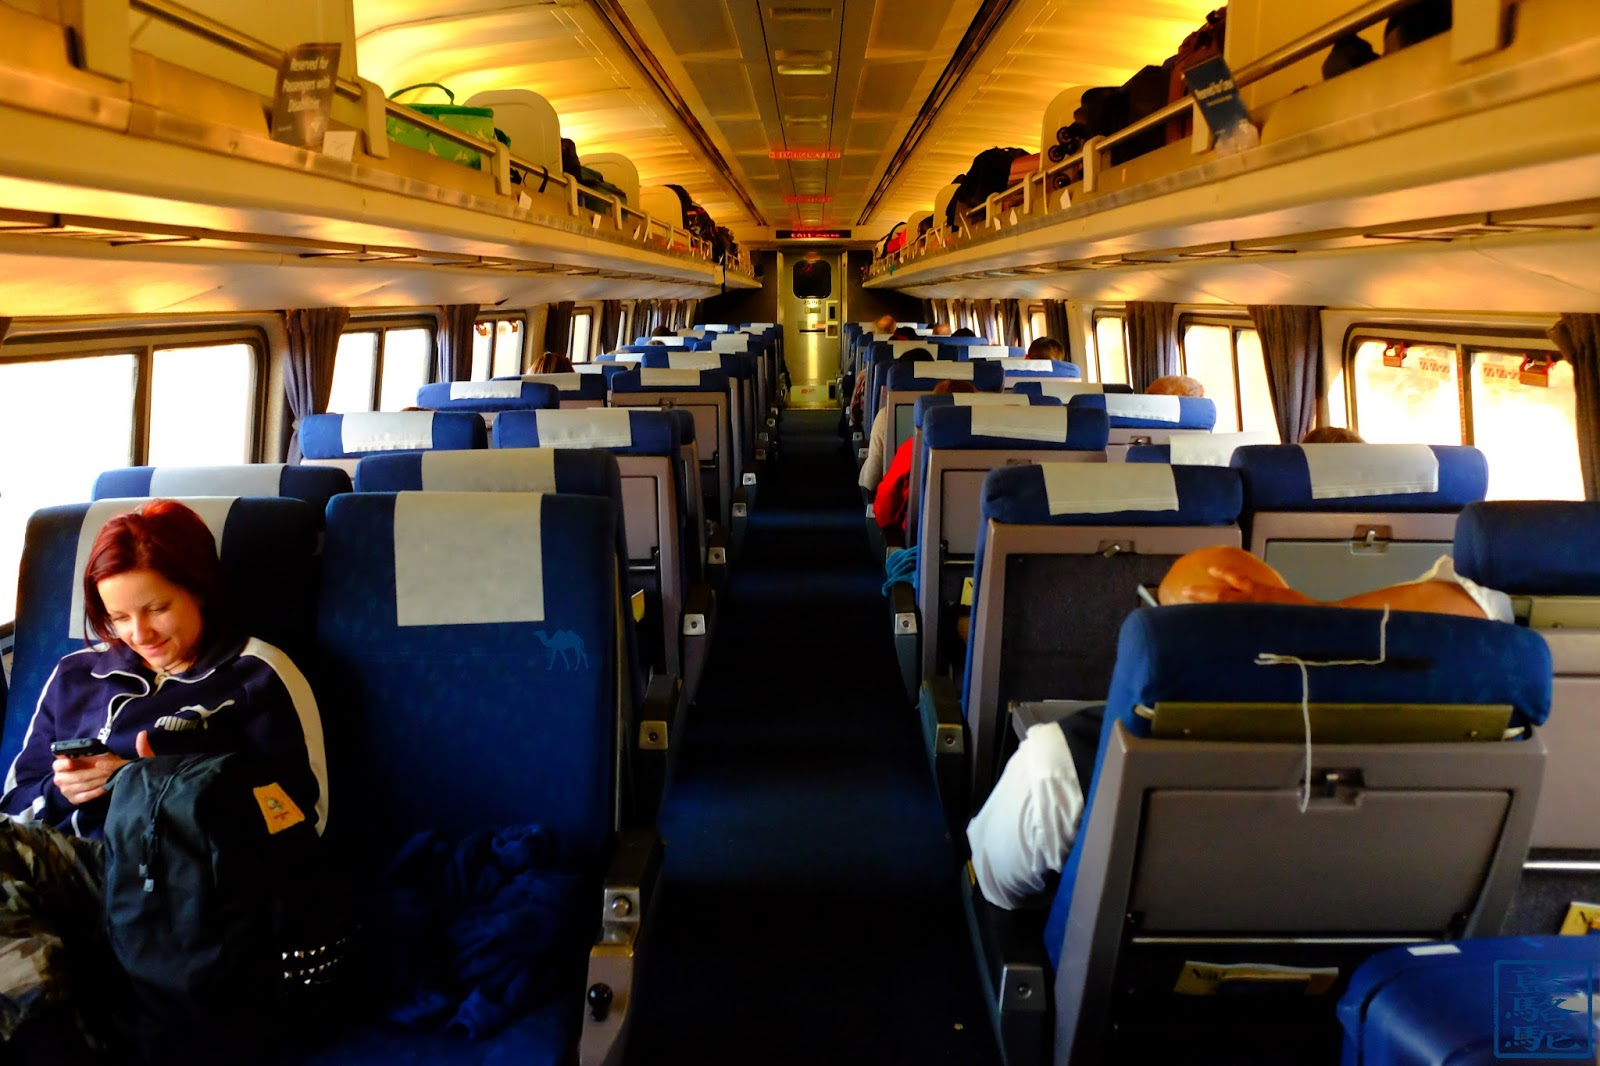 Interieur Trein New York Chicago En Train Le Chameau Bleu